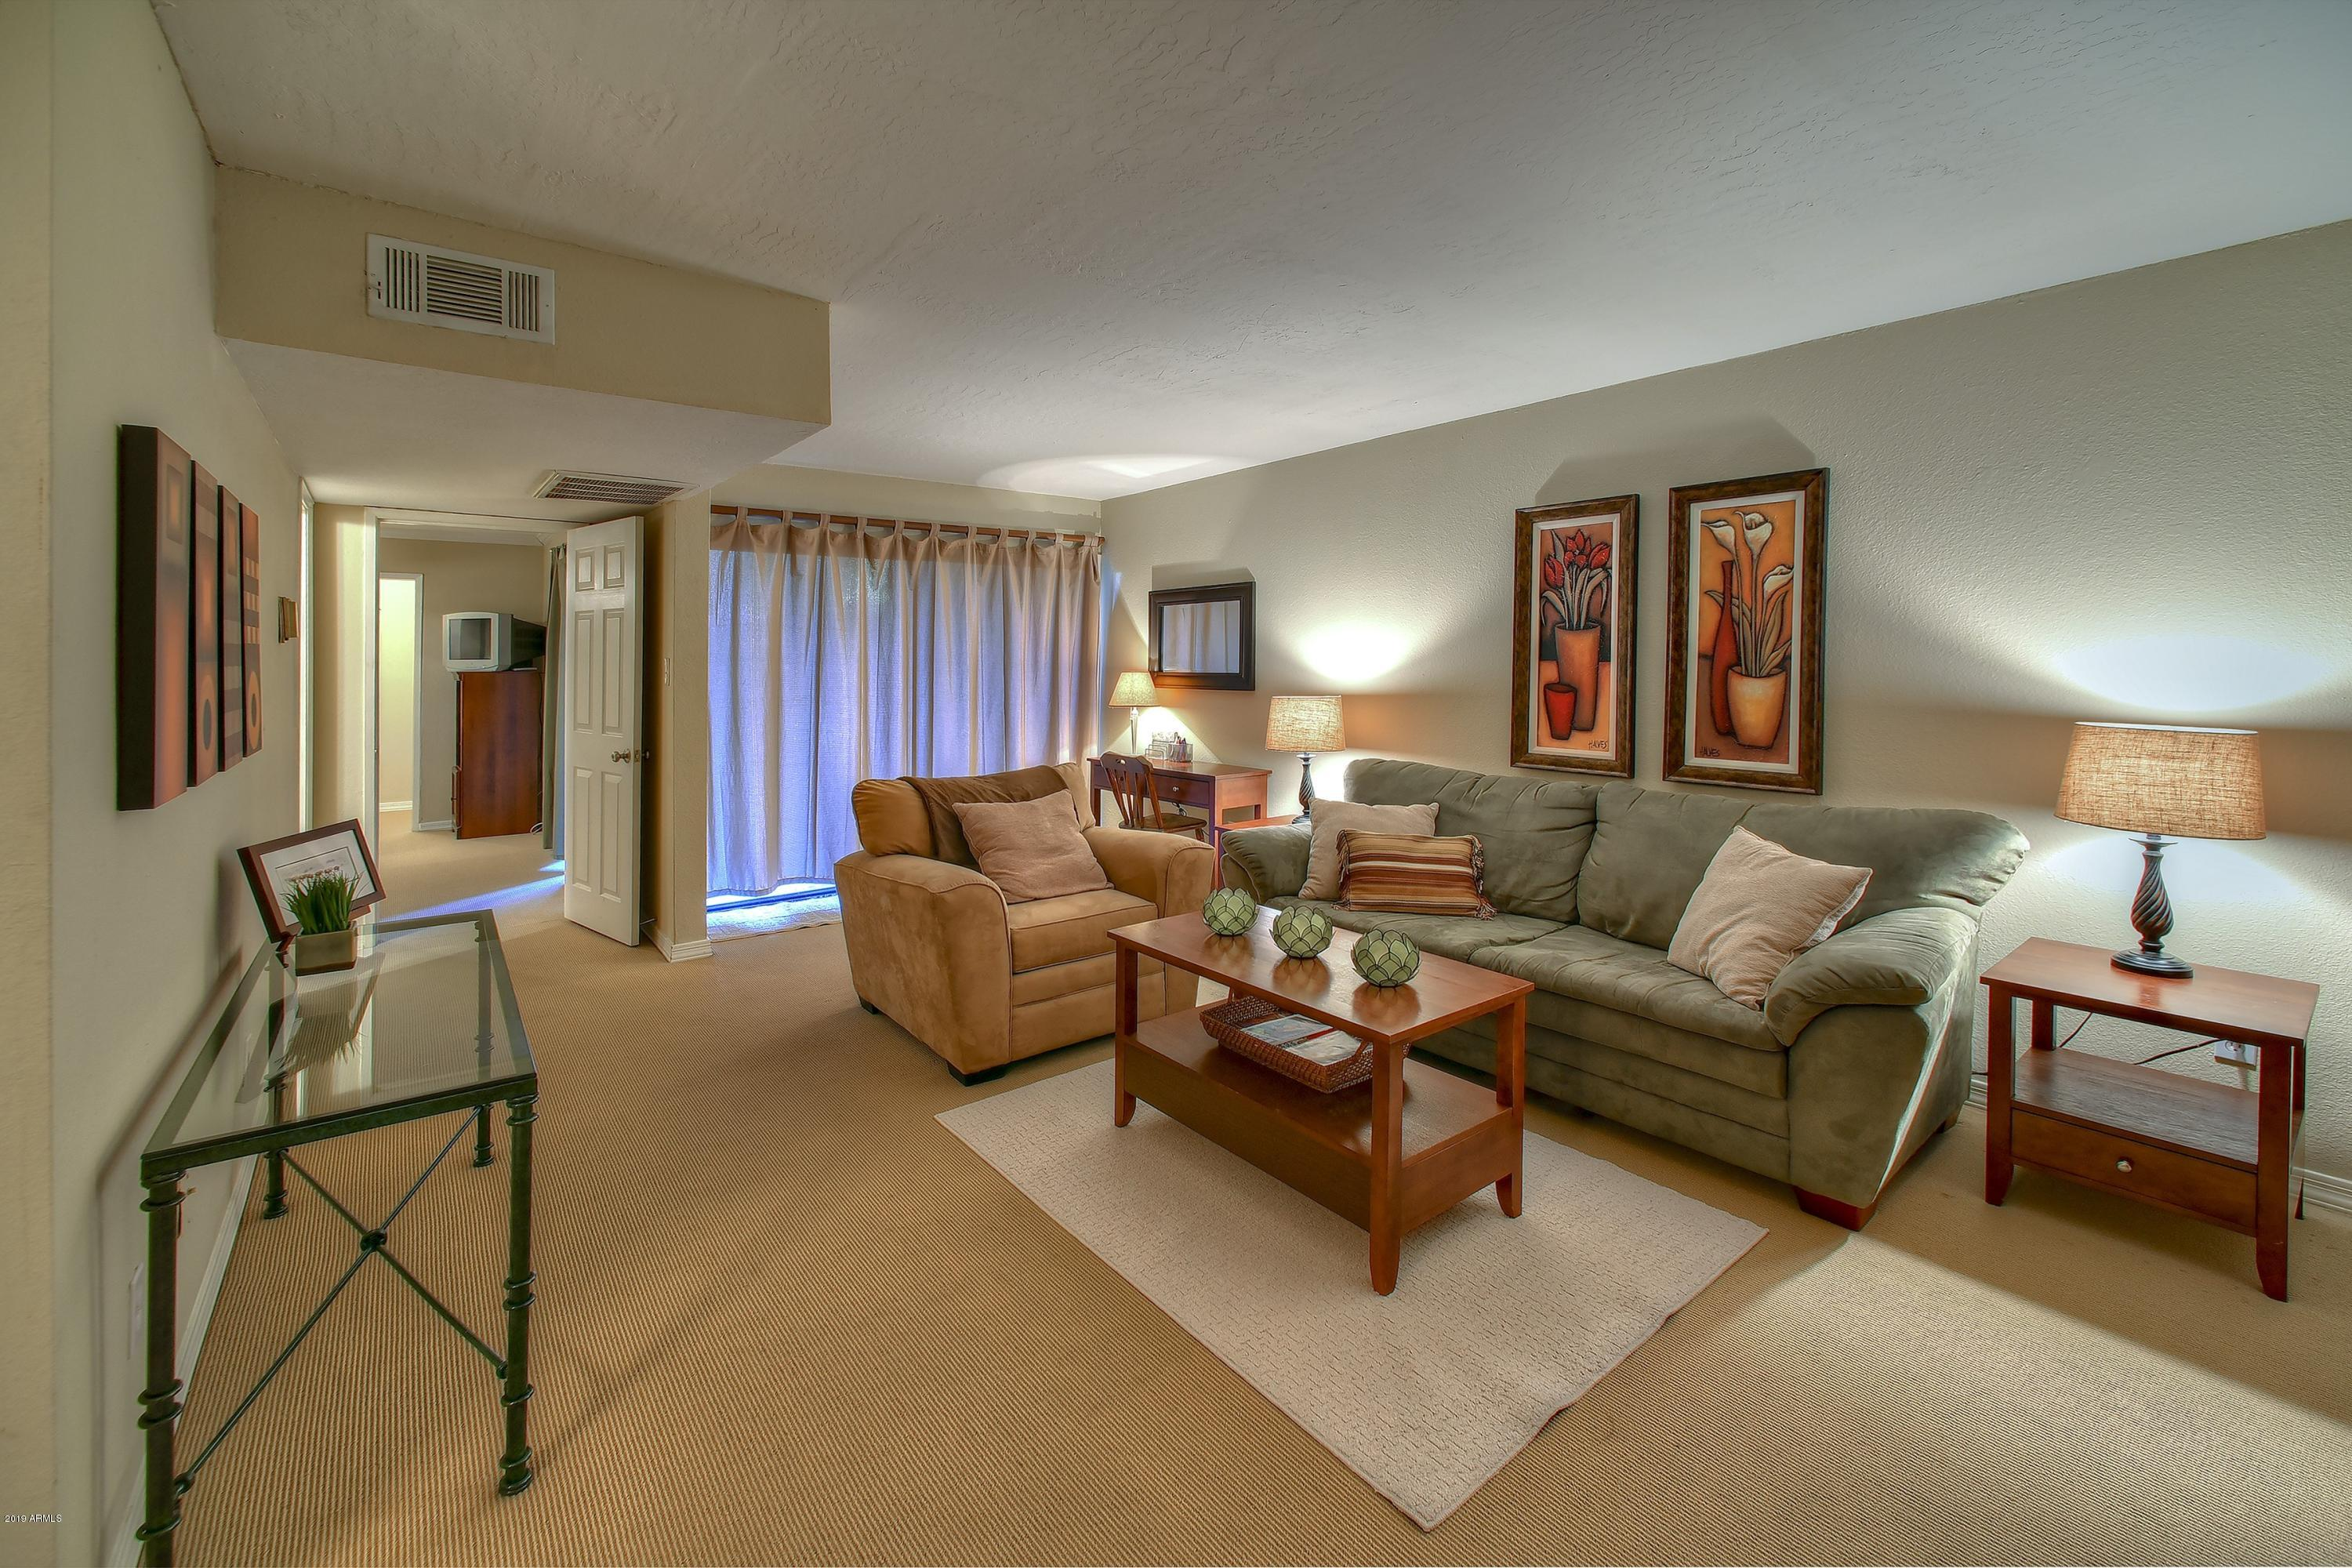 Photo of 4950 N Miller Road #146, Scottsdale, AZ 85251